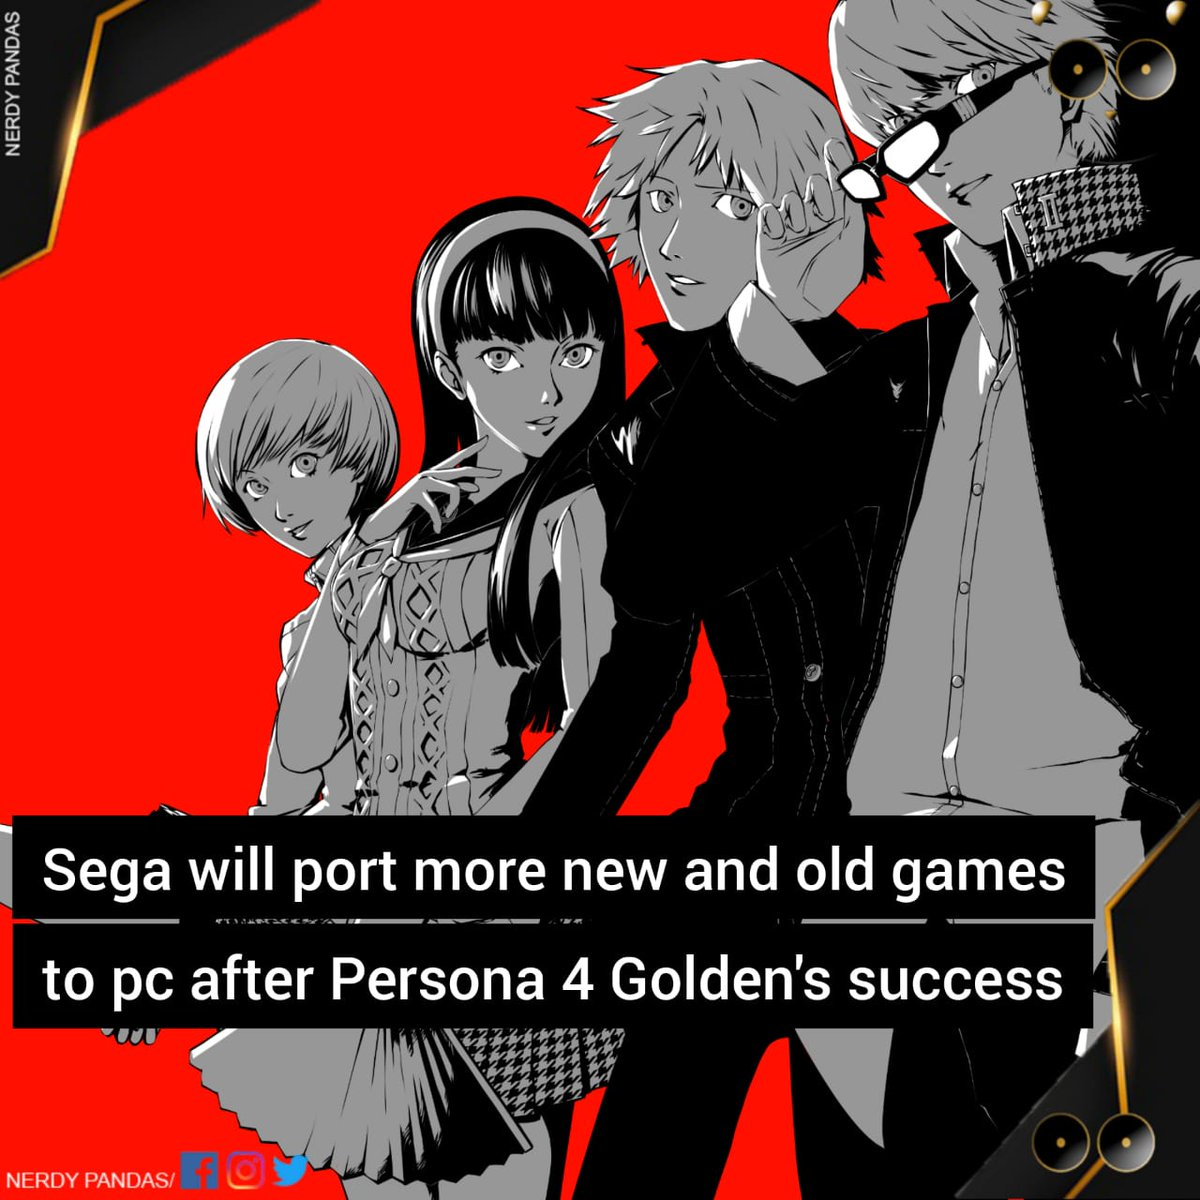 Have u played persona 4 ? #Gamer #games #videogames #pc #pcgaming #game #steam #gaminglife #gamerlife #gaming #xbox #ps #xboxone #ps4 #steam #friend #multiplayer #multiplayergame #arcade #minecraft #callofduty #virtualreality #technology #meme #dankmemespic.twitter.com/9ZAekwnqzd